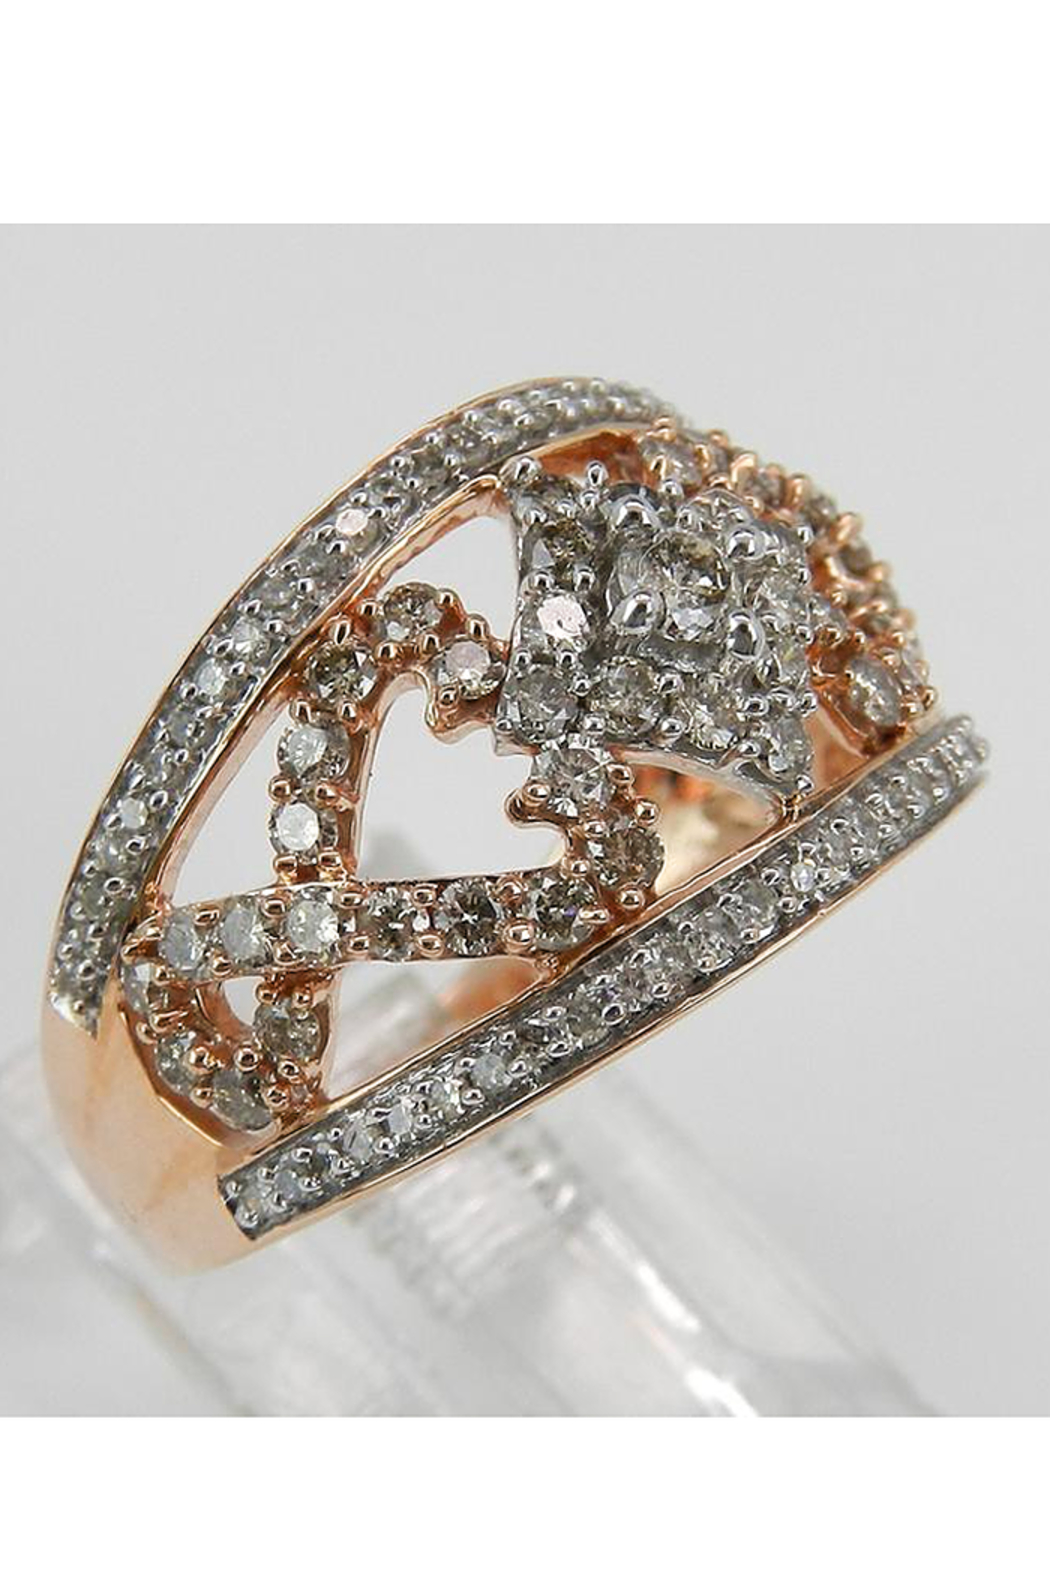 Margolin & Co 1.00 ct Diamond Cluster Heart Cocktail Ring Statement Band Rose Pink Gold Size 7.25 - Front Full Image